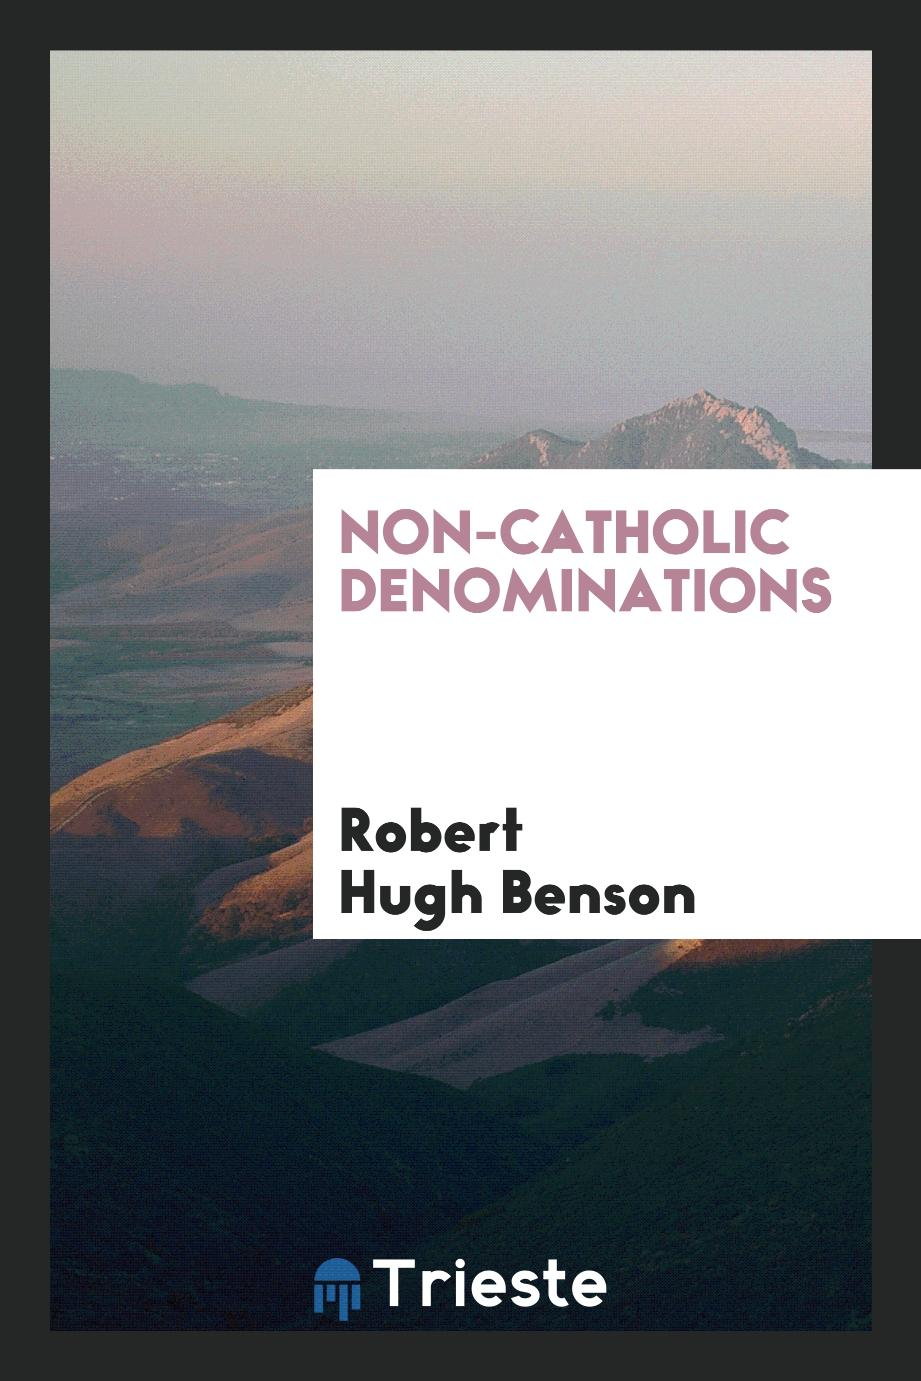 Non-Catholic denominations